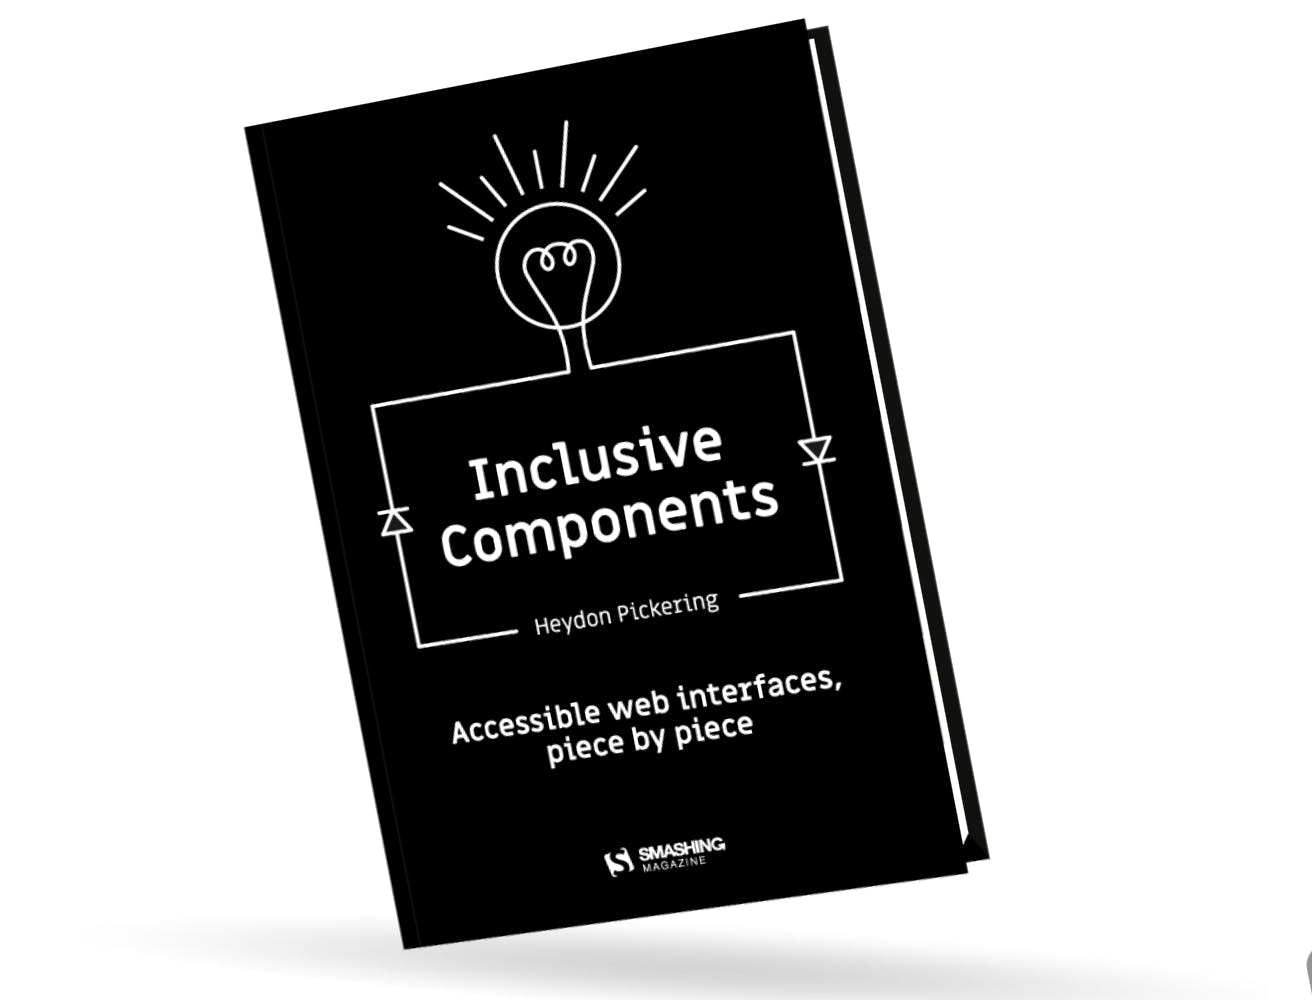 Inclusive Components by Heydon Pickering